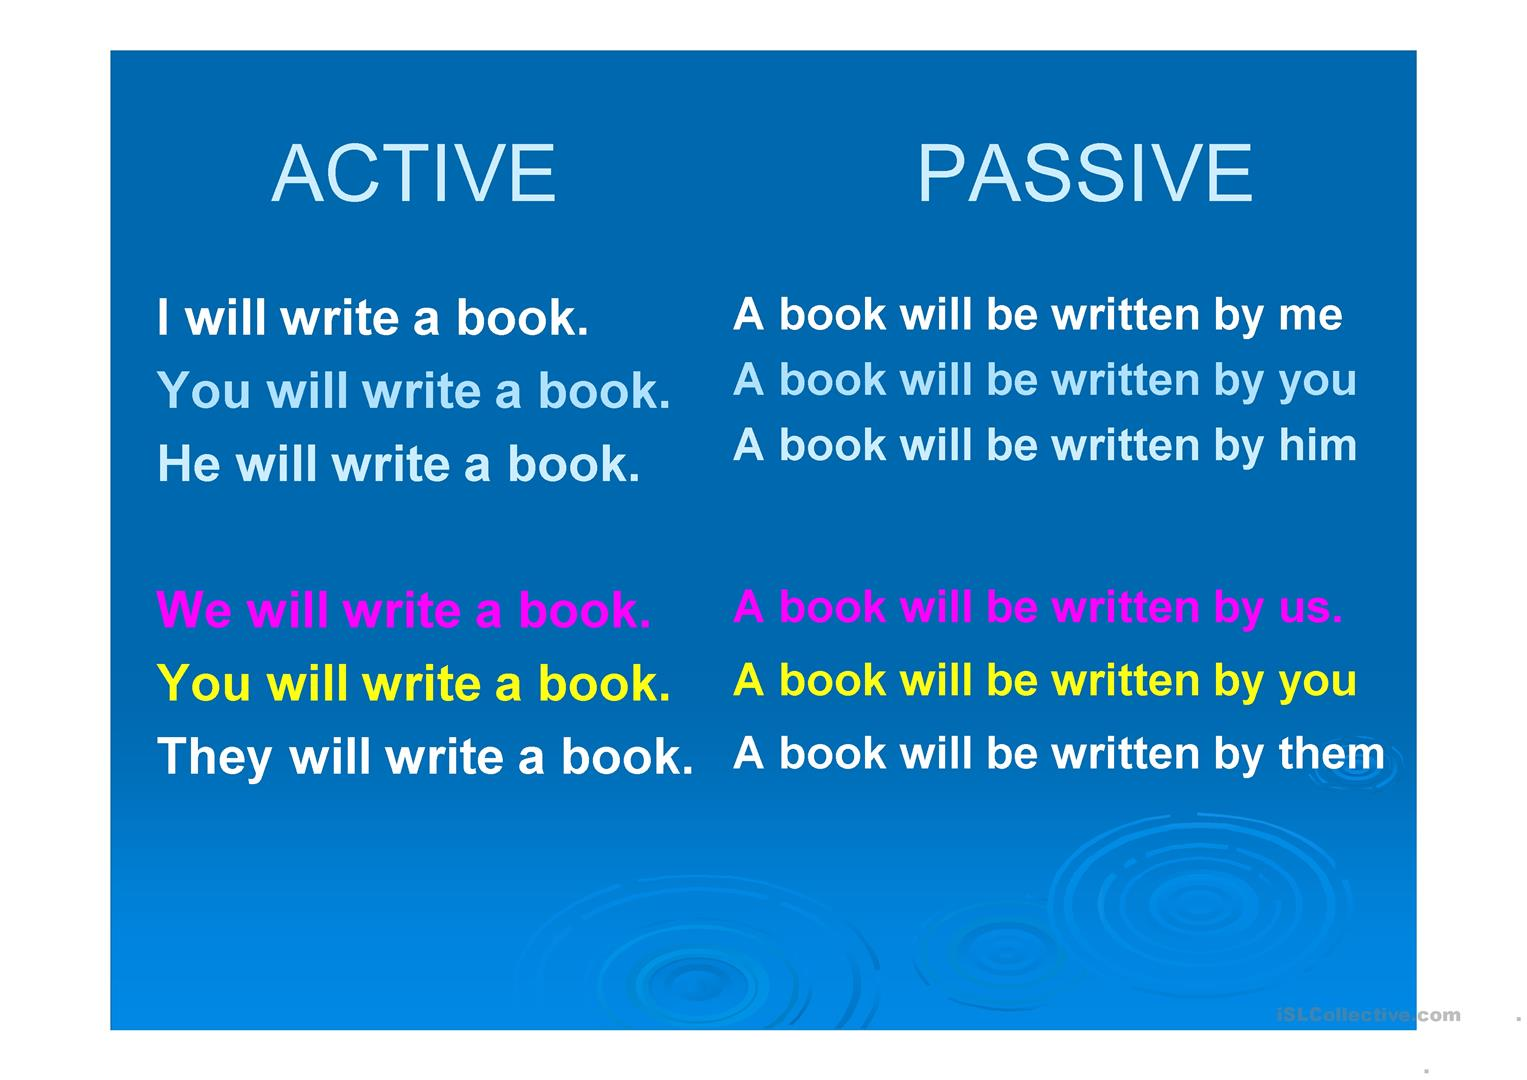 The Passive Voice Explanation Worksheet